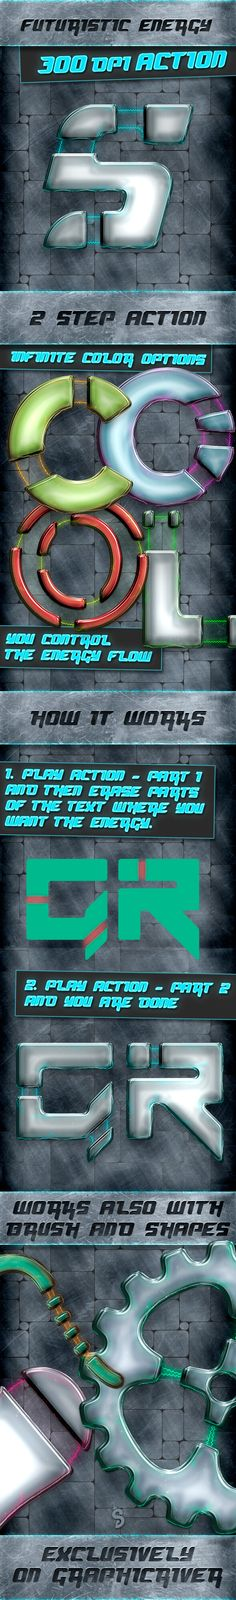 Energy Text and Shape Action - 300 DPI - Text Effects #Actions Download here: https://graphicriver.net/item/energy-text-and-shape-action-300-dpi/20064605?ref=alena994